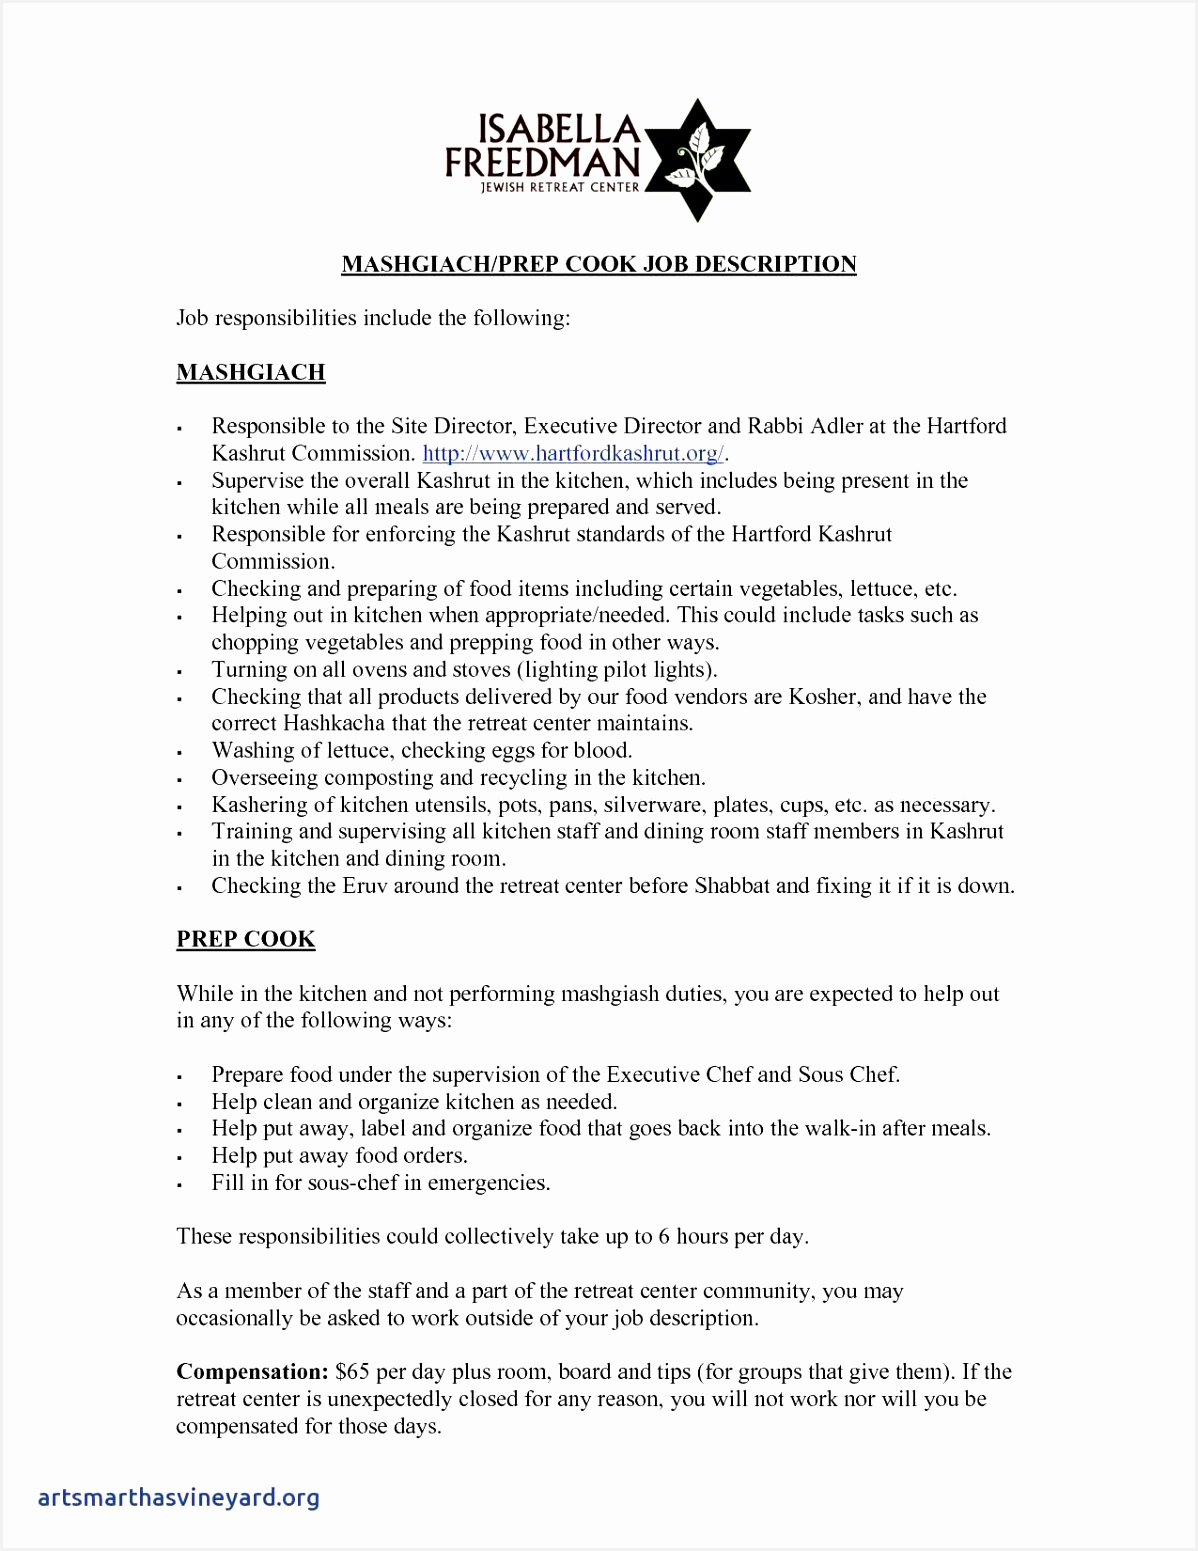 What to Put In A Resume Cover Letter C7mkg Inspirational Cover Letter Template Doc Collection Of What to Put In A Resume Cover Letter Garaw Elegant 20 New Security Job Description for Resume Picture